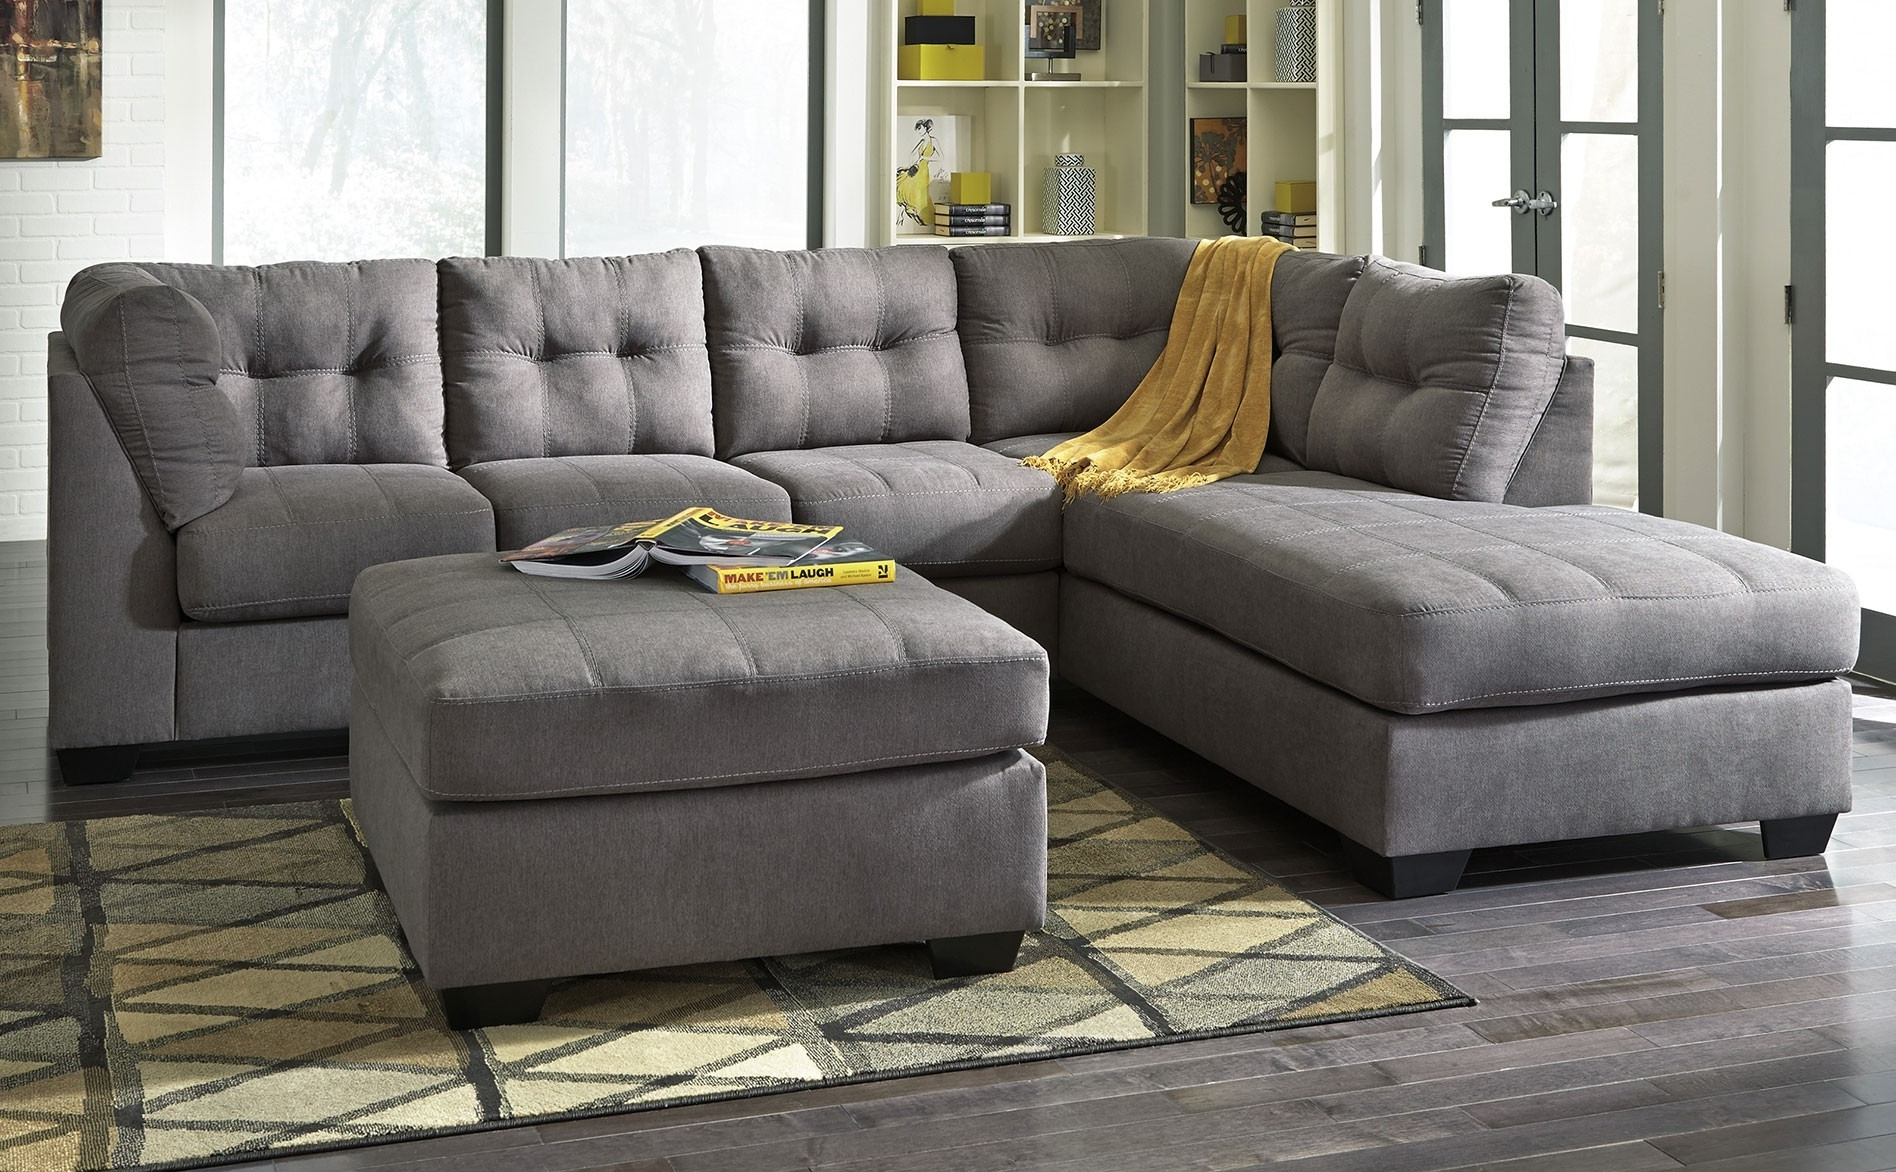 2017 Chaise Lounge Sectionals Within Best Ideas Of Sectionals With Chaise Lounge Also Living Room Grey (View 10 of 15)